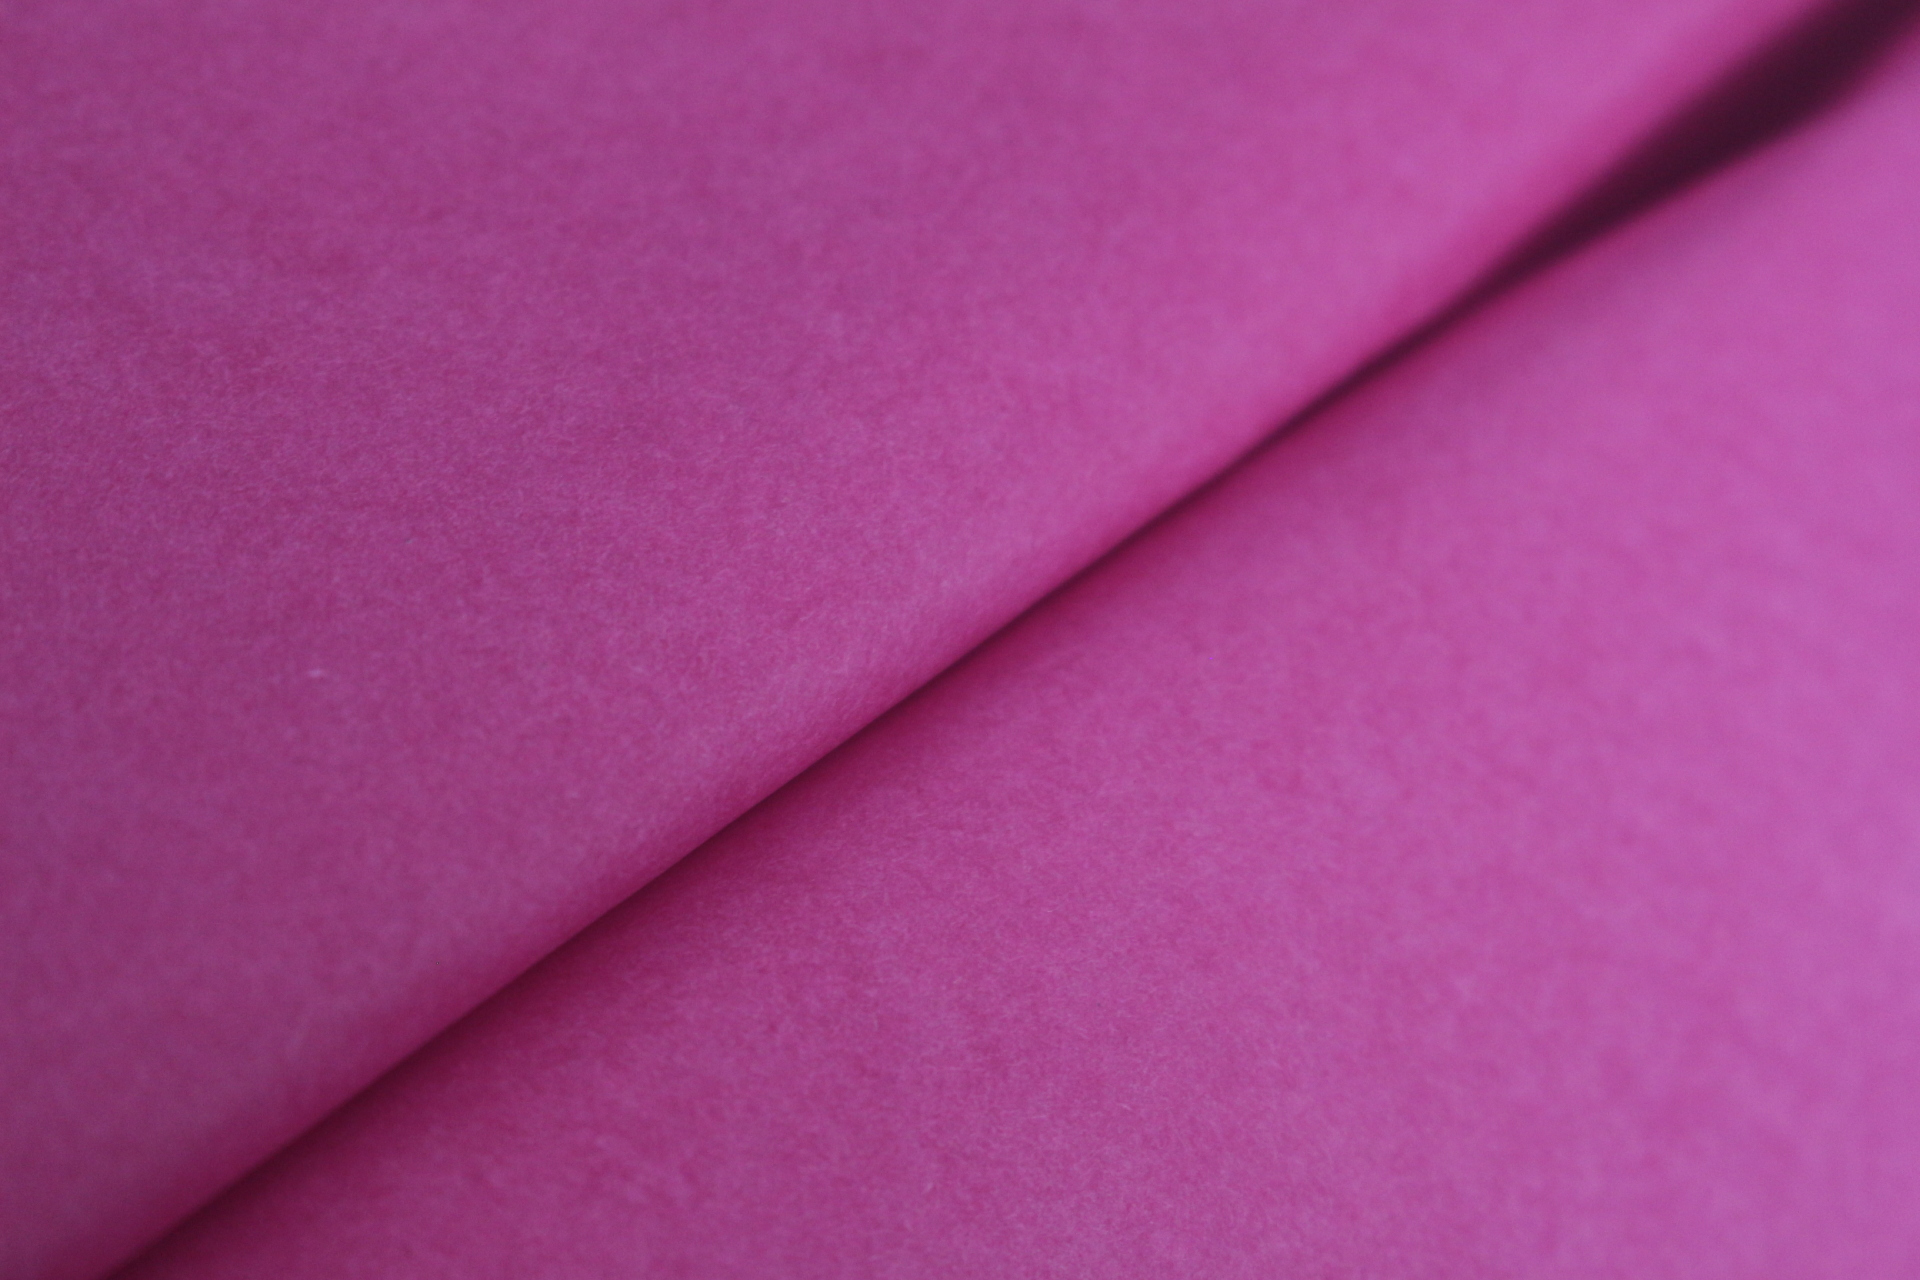 Solid color tissue paper gift wrapping paper plain color tis